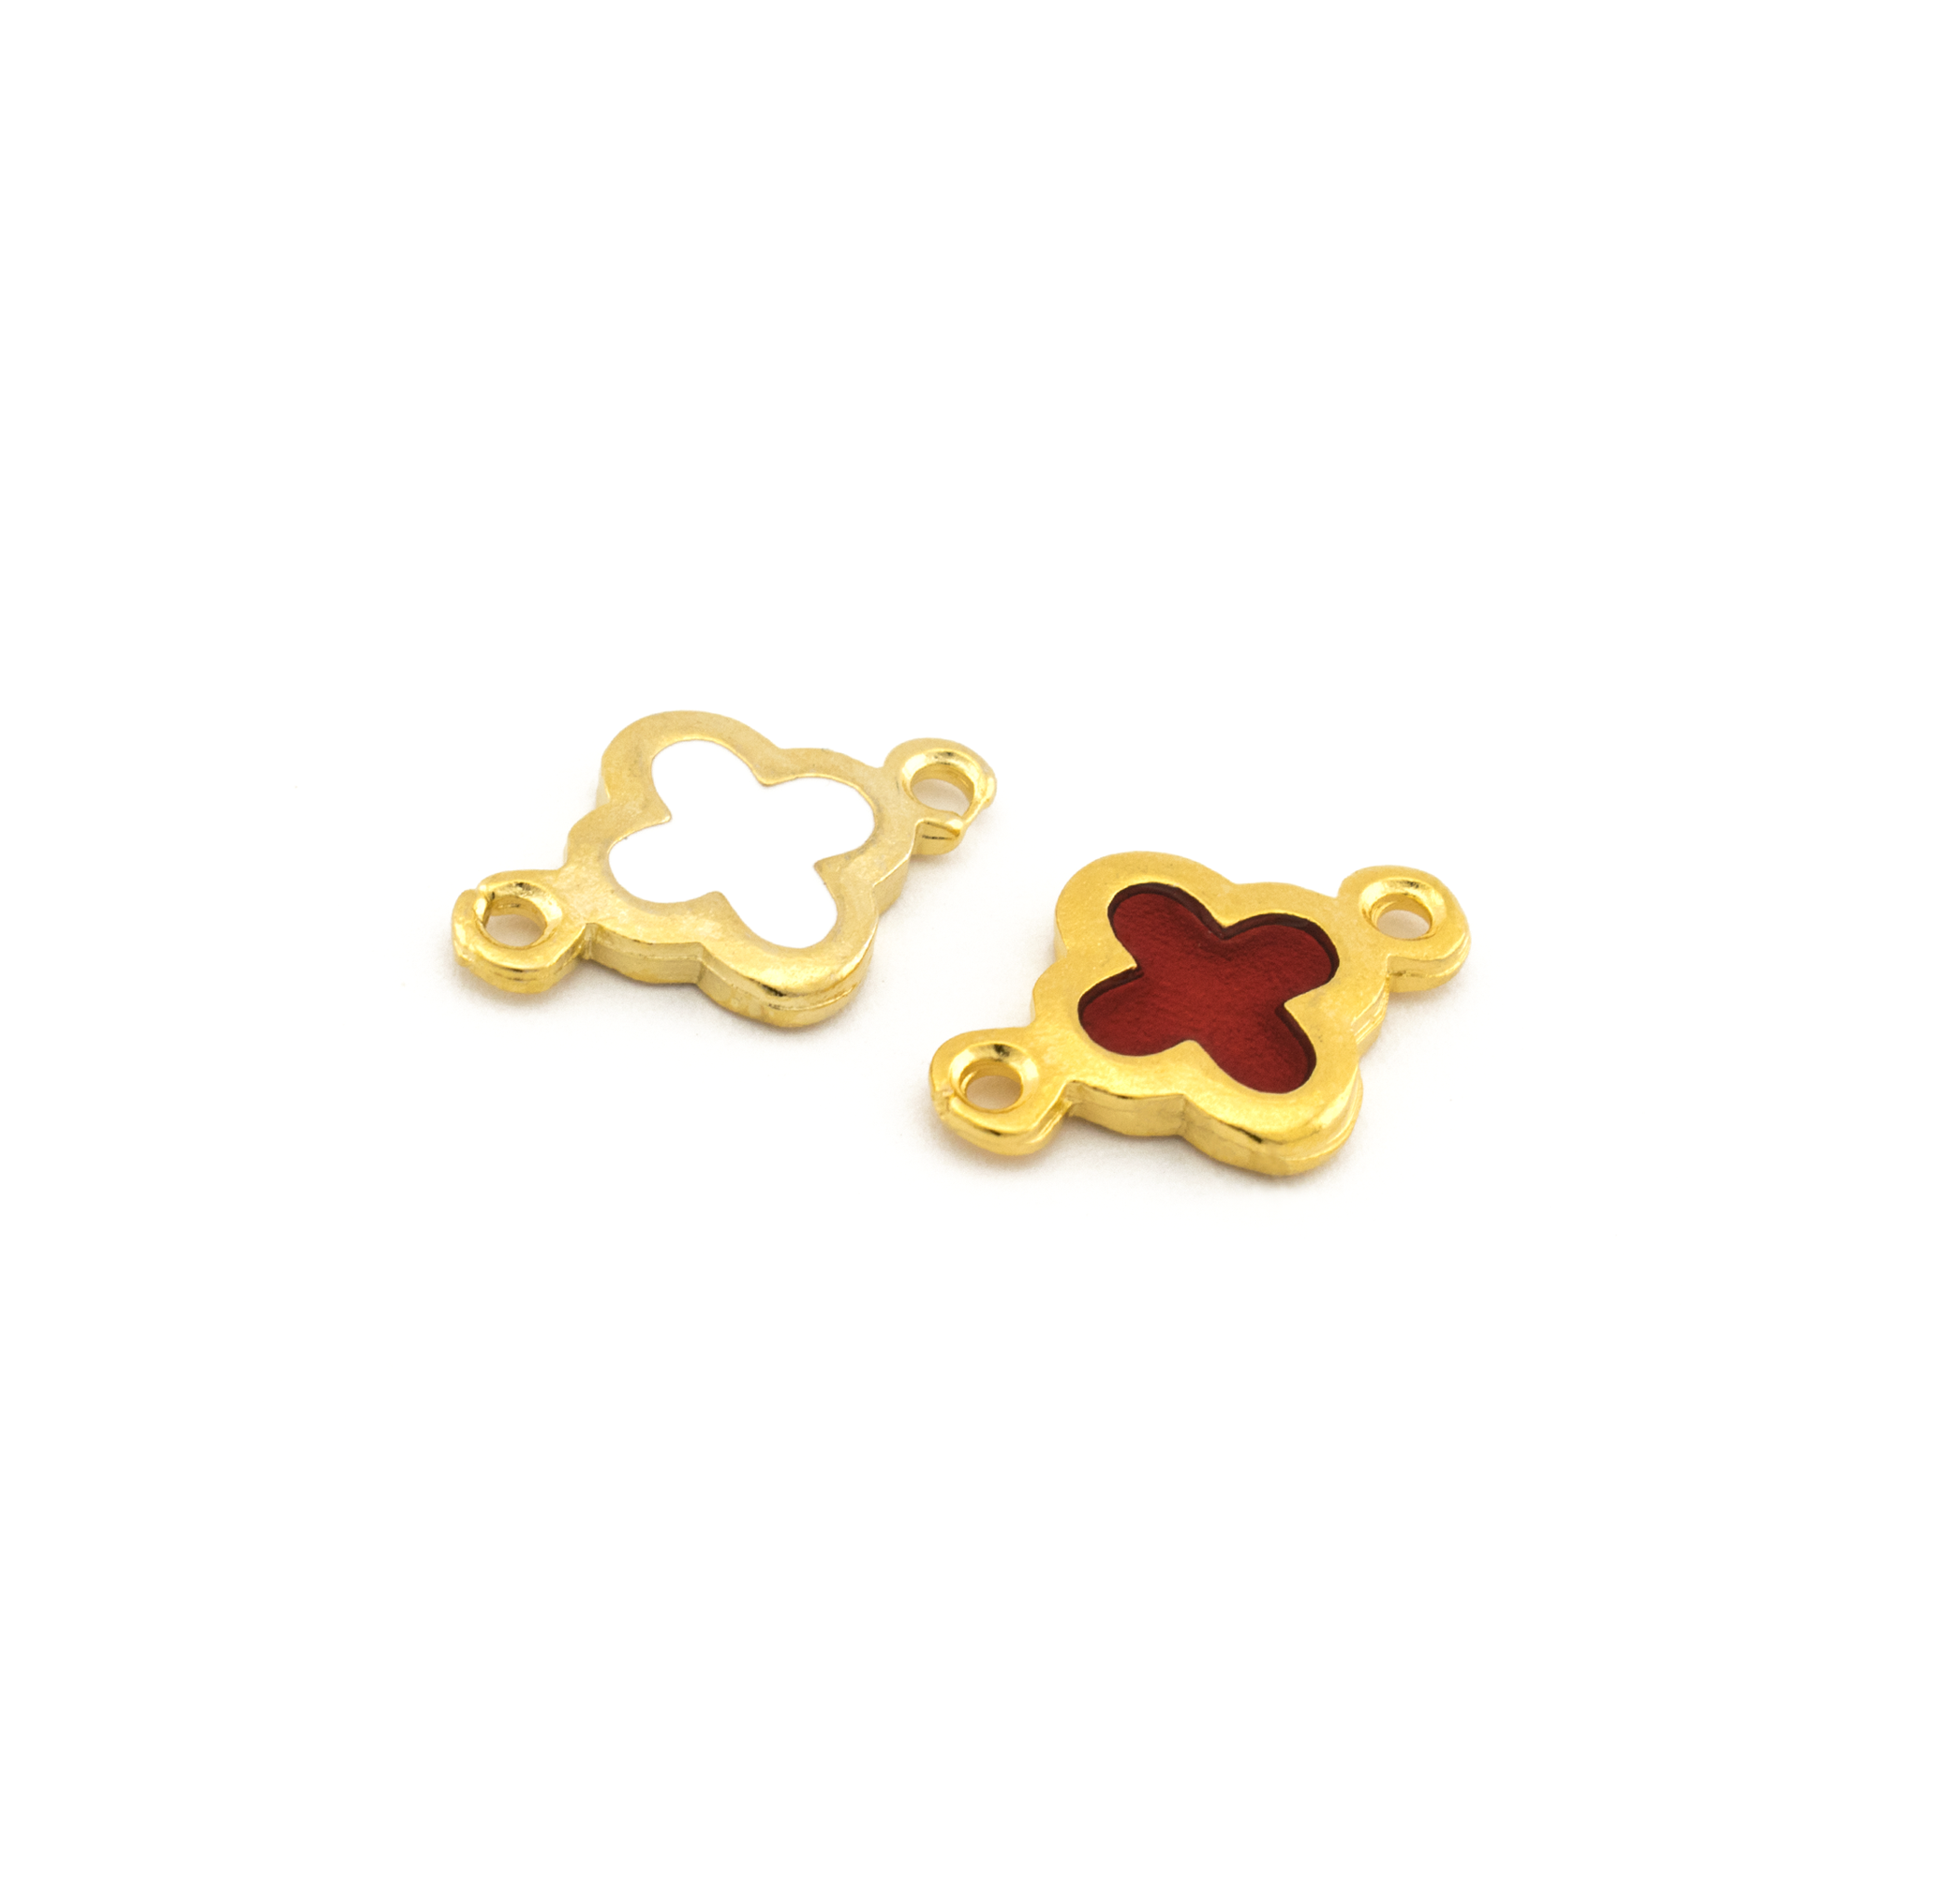 CROSS WITH ENAMEL GOLD PLATED 17x11mm